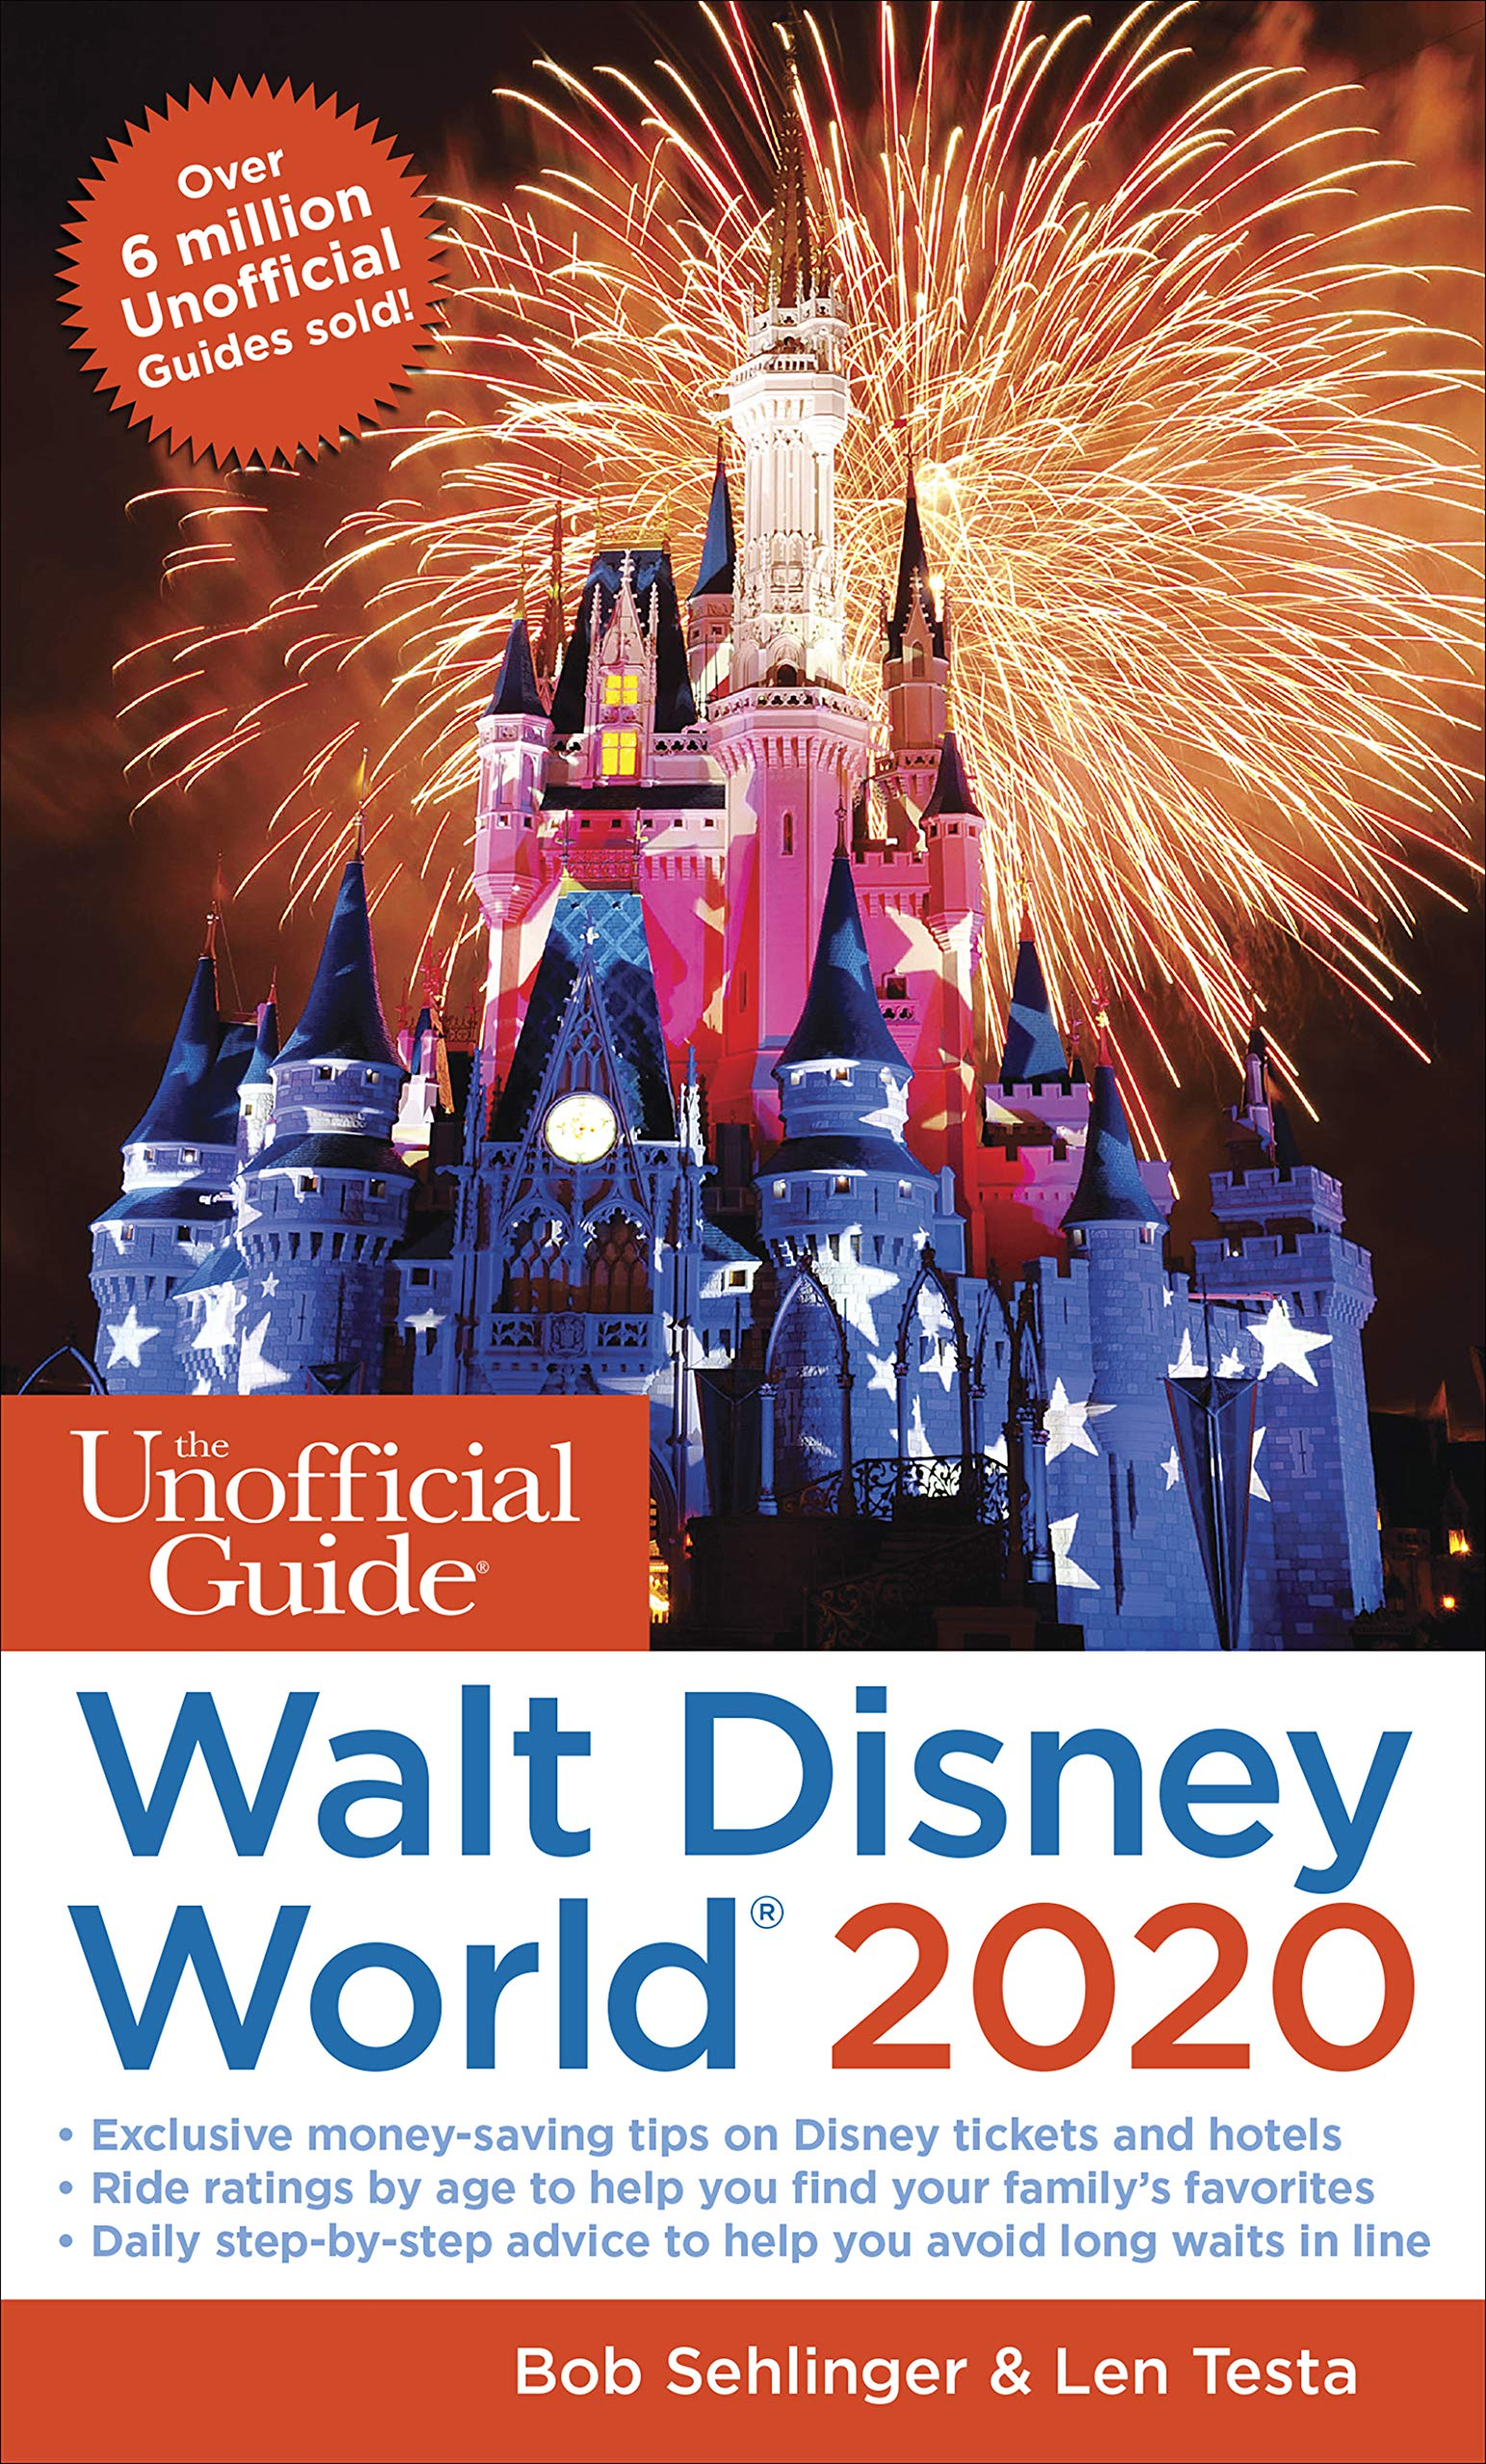 Events At Disney World 2020.The Unofficial Guide To Walt Disney World 2020 Unofficial